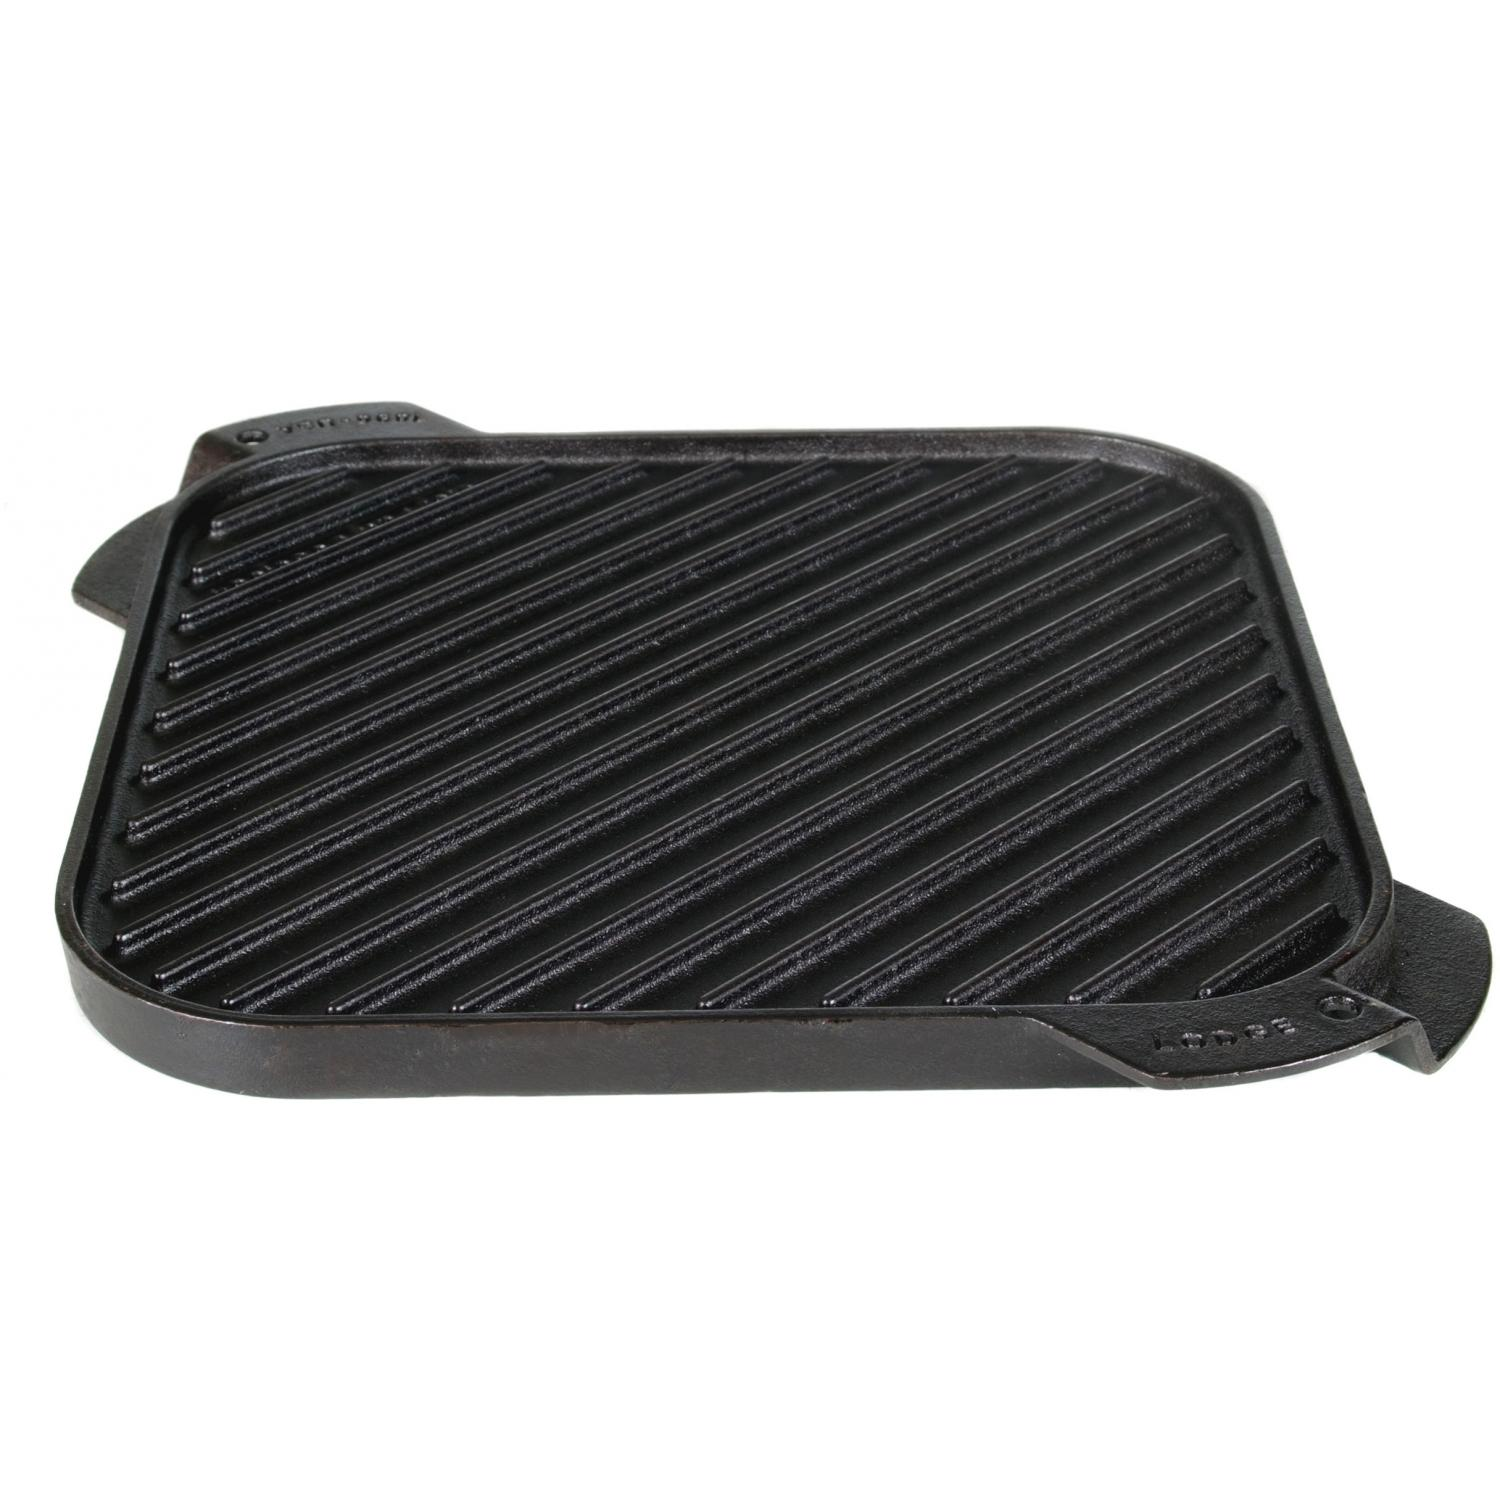 Lodge Griddles Logic 10.5 Inch Single Burner Reversible Cast Iron Griddle - LSRG3